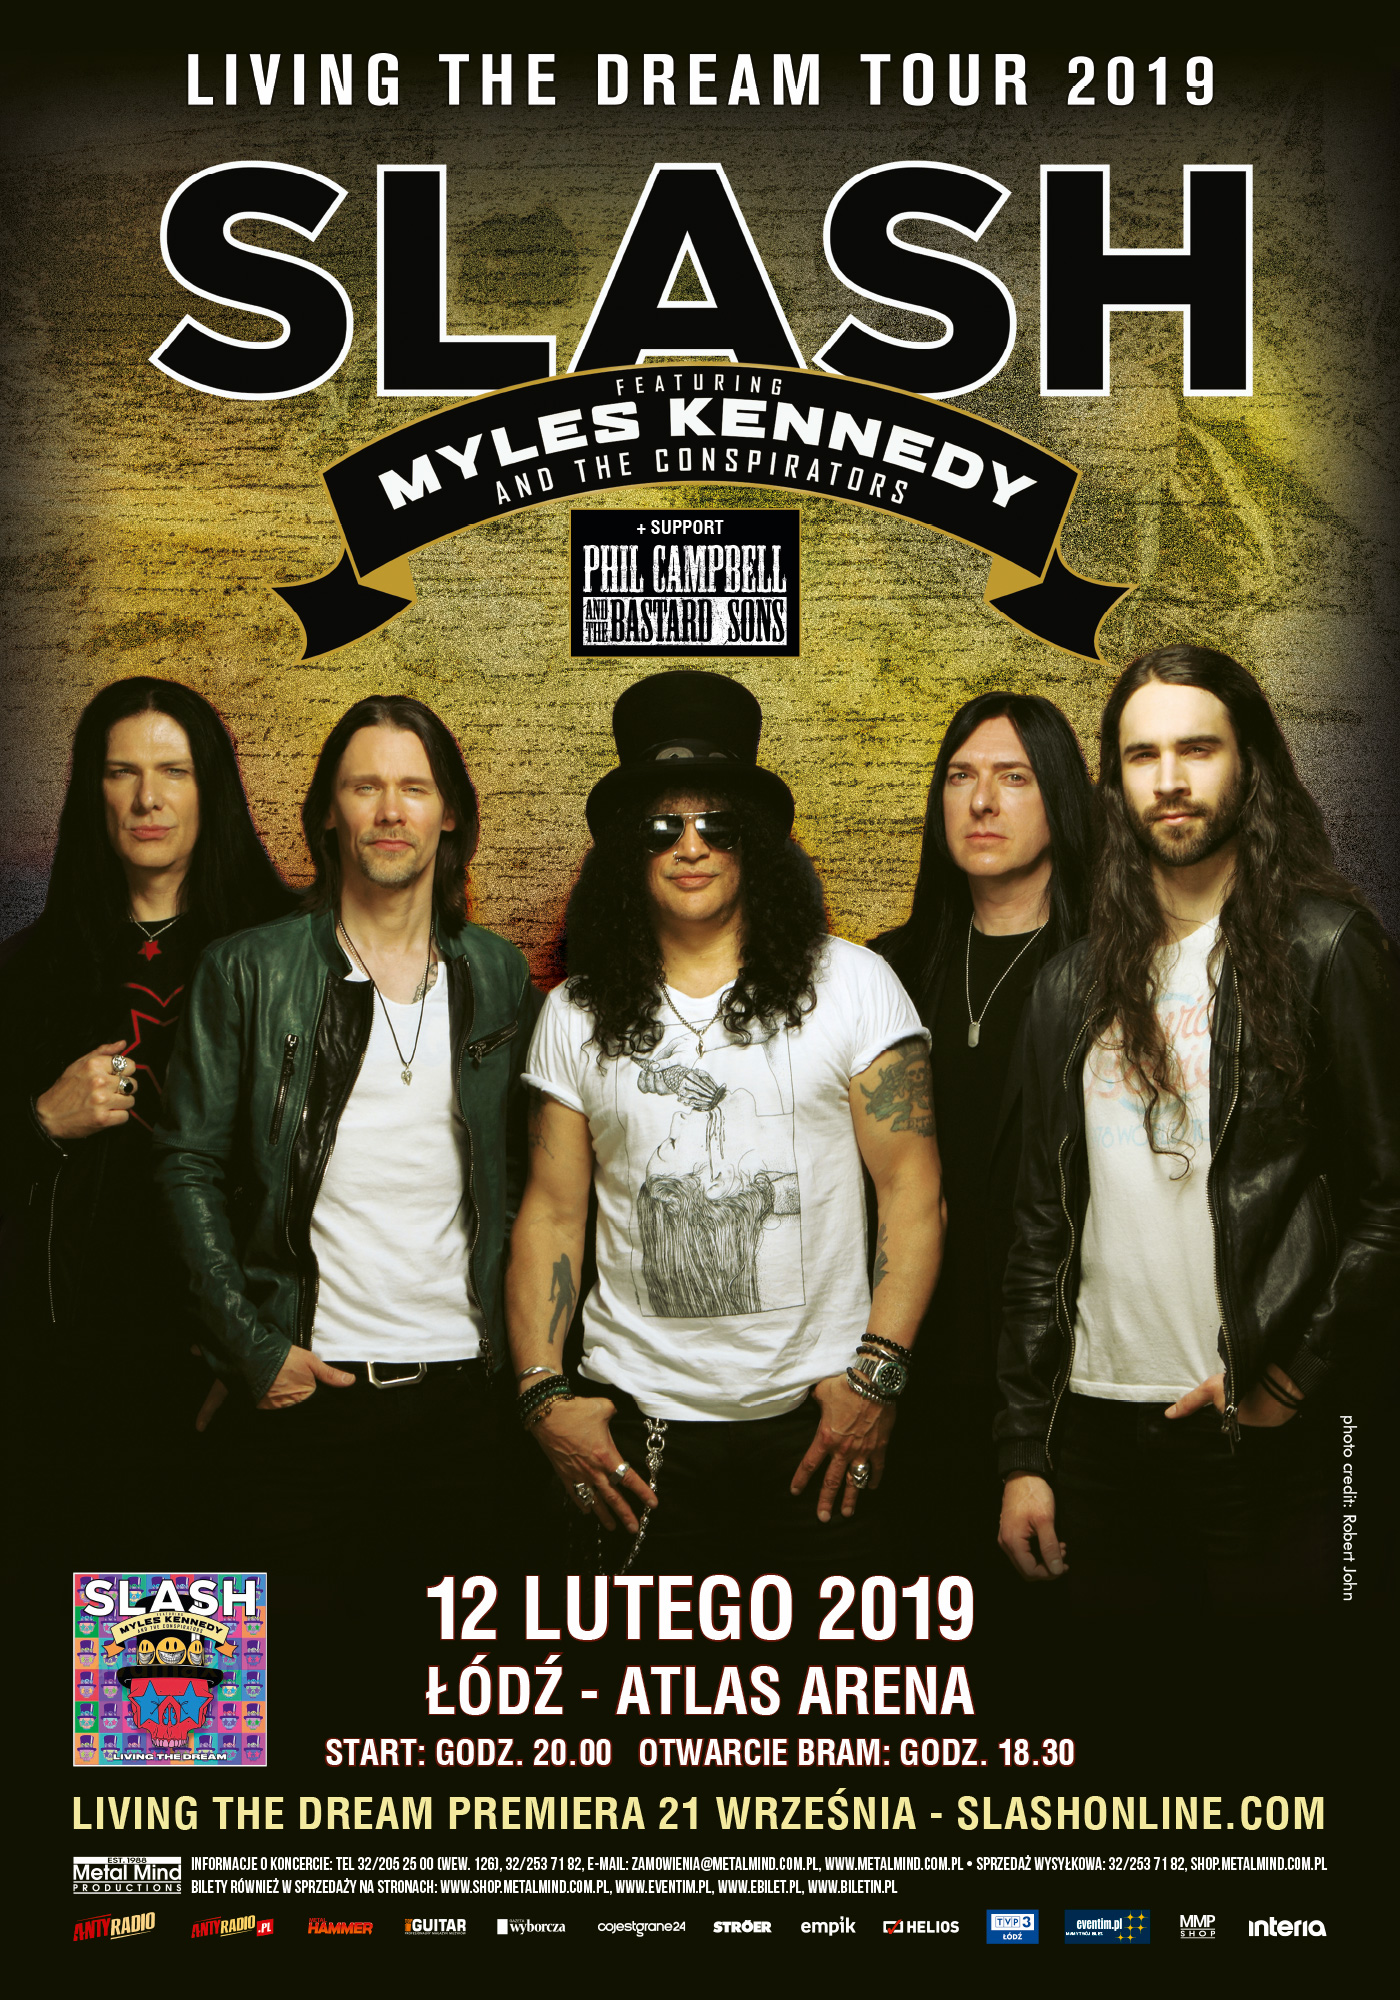 Koncert Slash feat. Myles Kennedy & The Conspirators w Łodzi